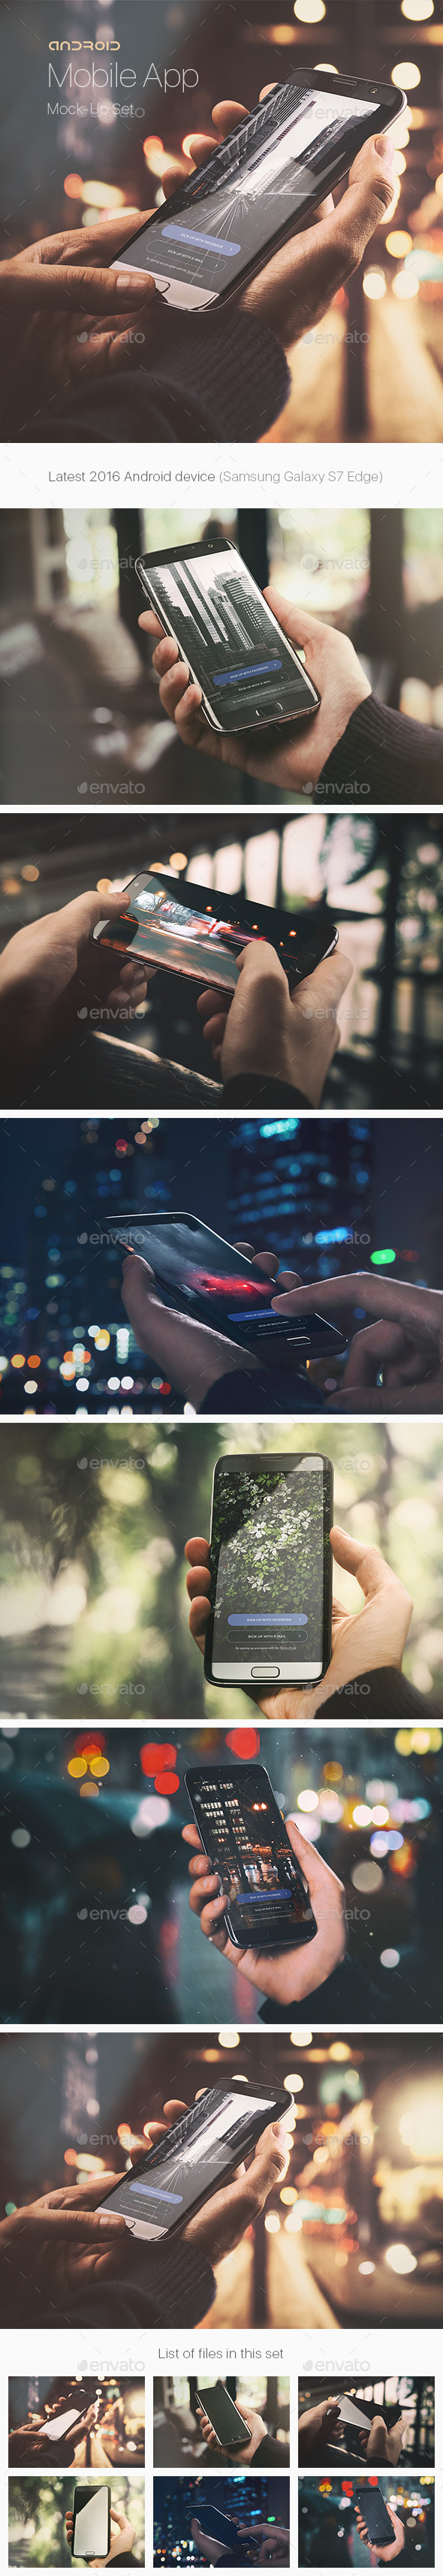 Android Phone App Mock-Up / Urban Edition